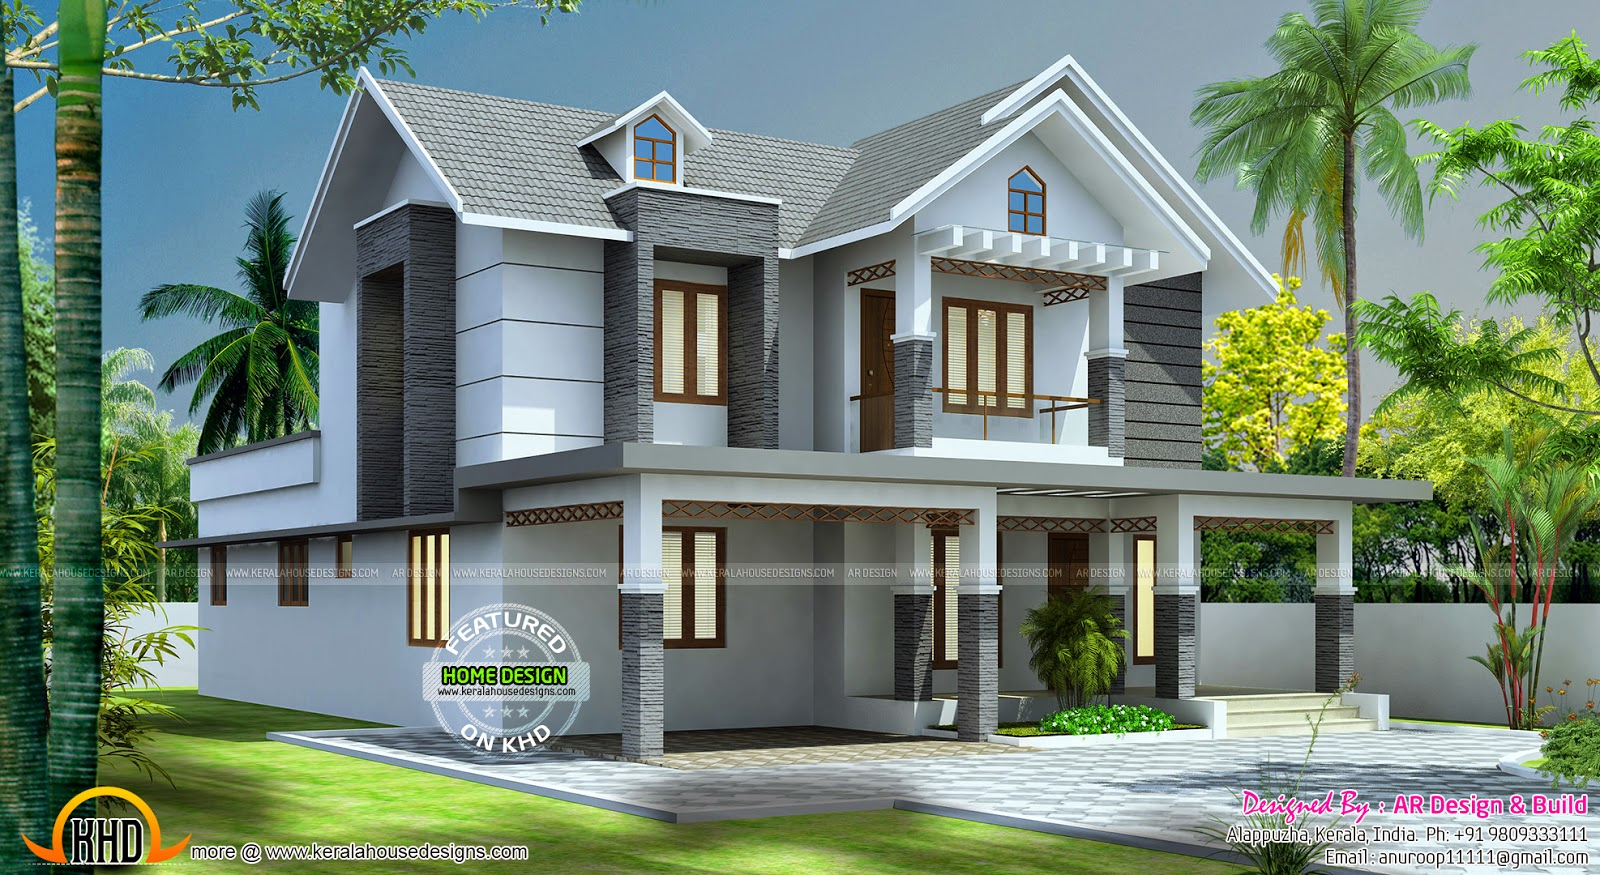 Beautiful 2545 sq ft home design kerala home design and for Beautiful home blueprints